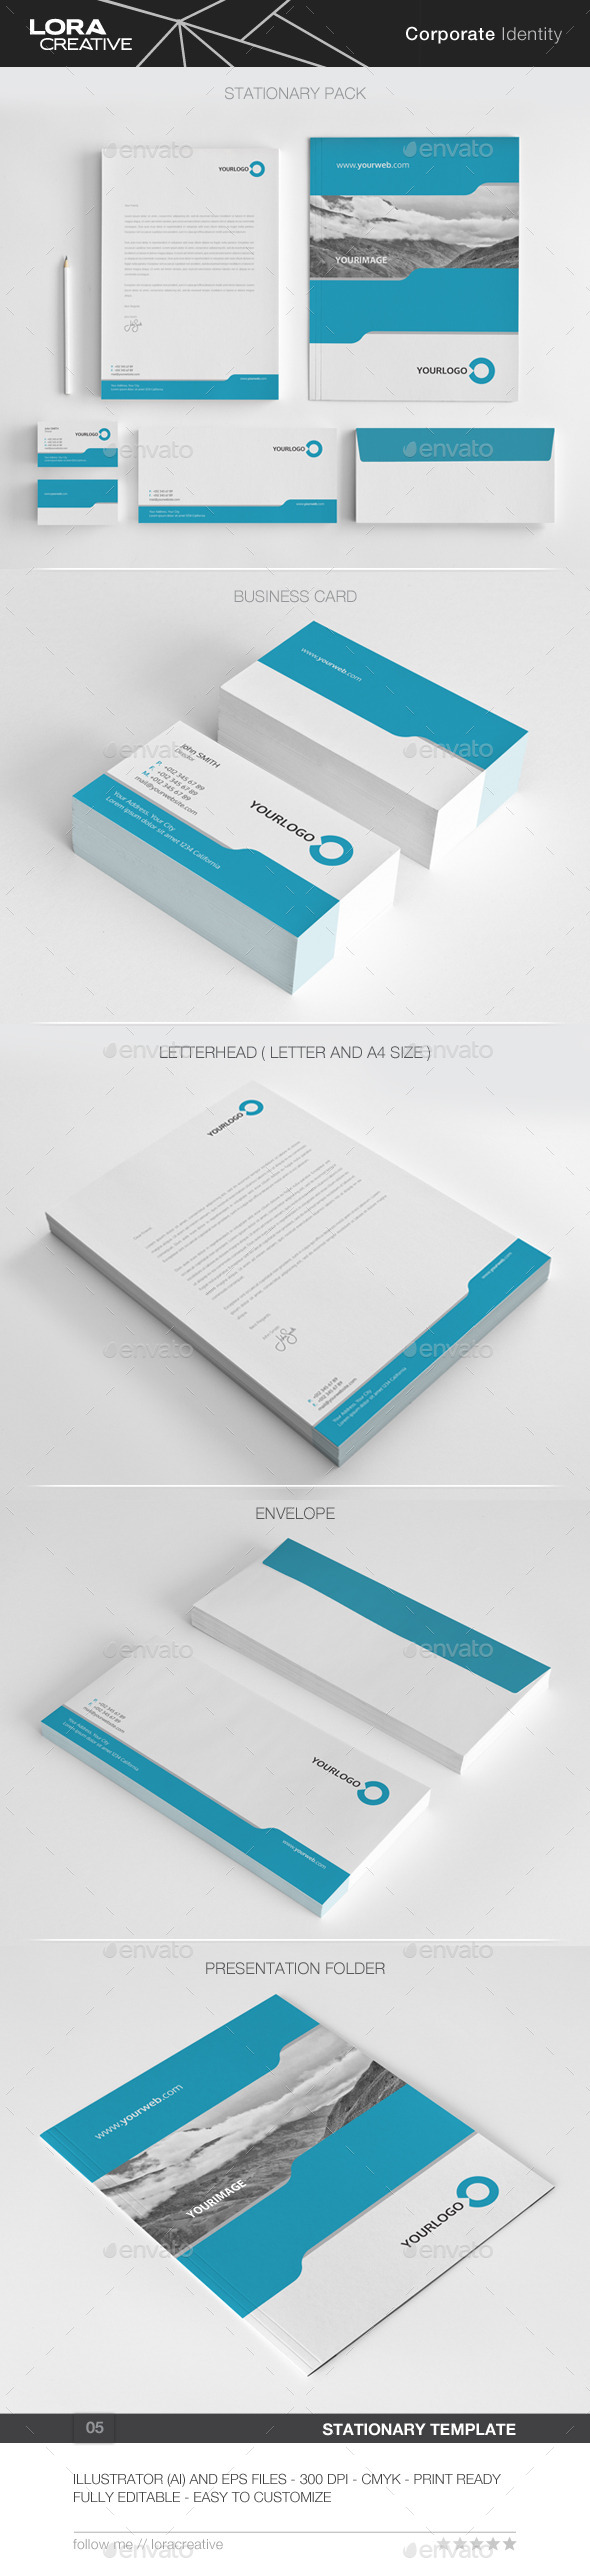 GraphicRiver Pure Concept Stationary Pack 05 10482412